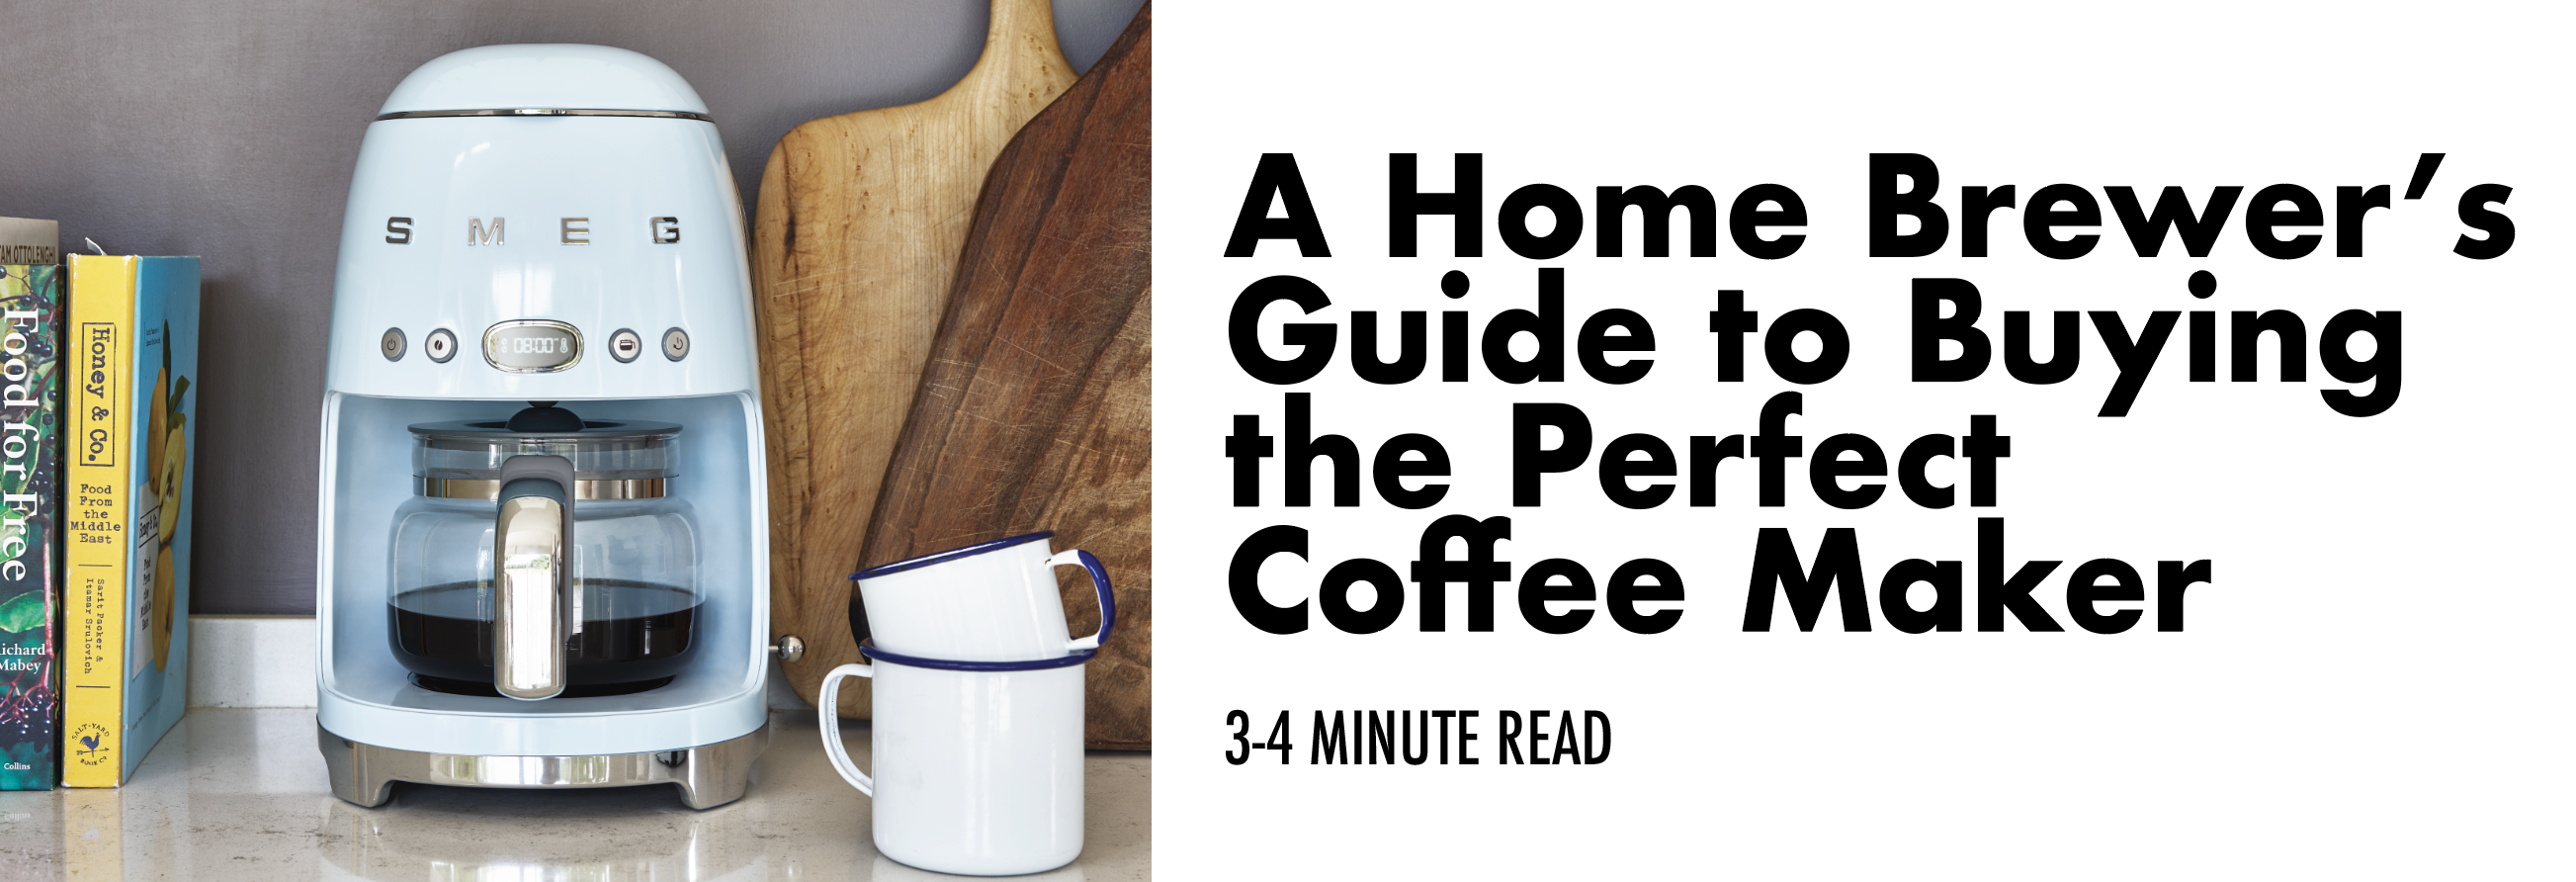 A Home Brewer's Guide to Buying the Perfect Coffee Maker